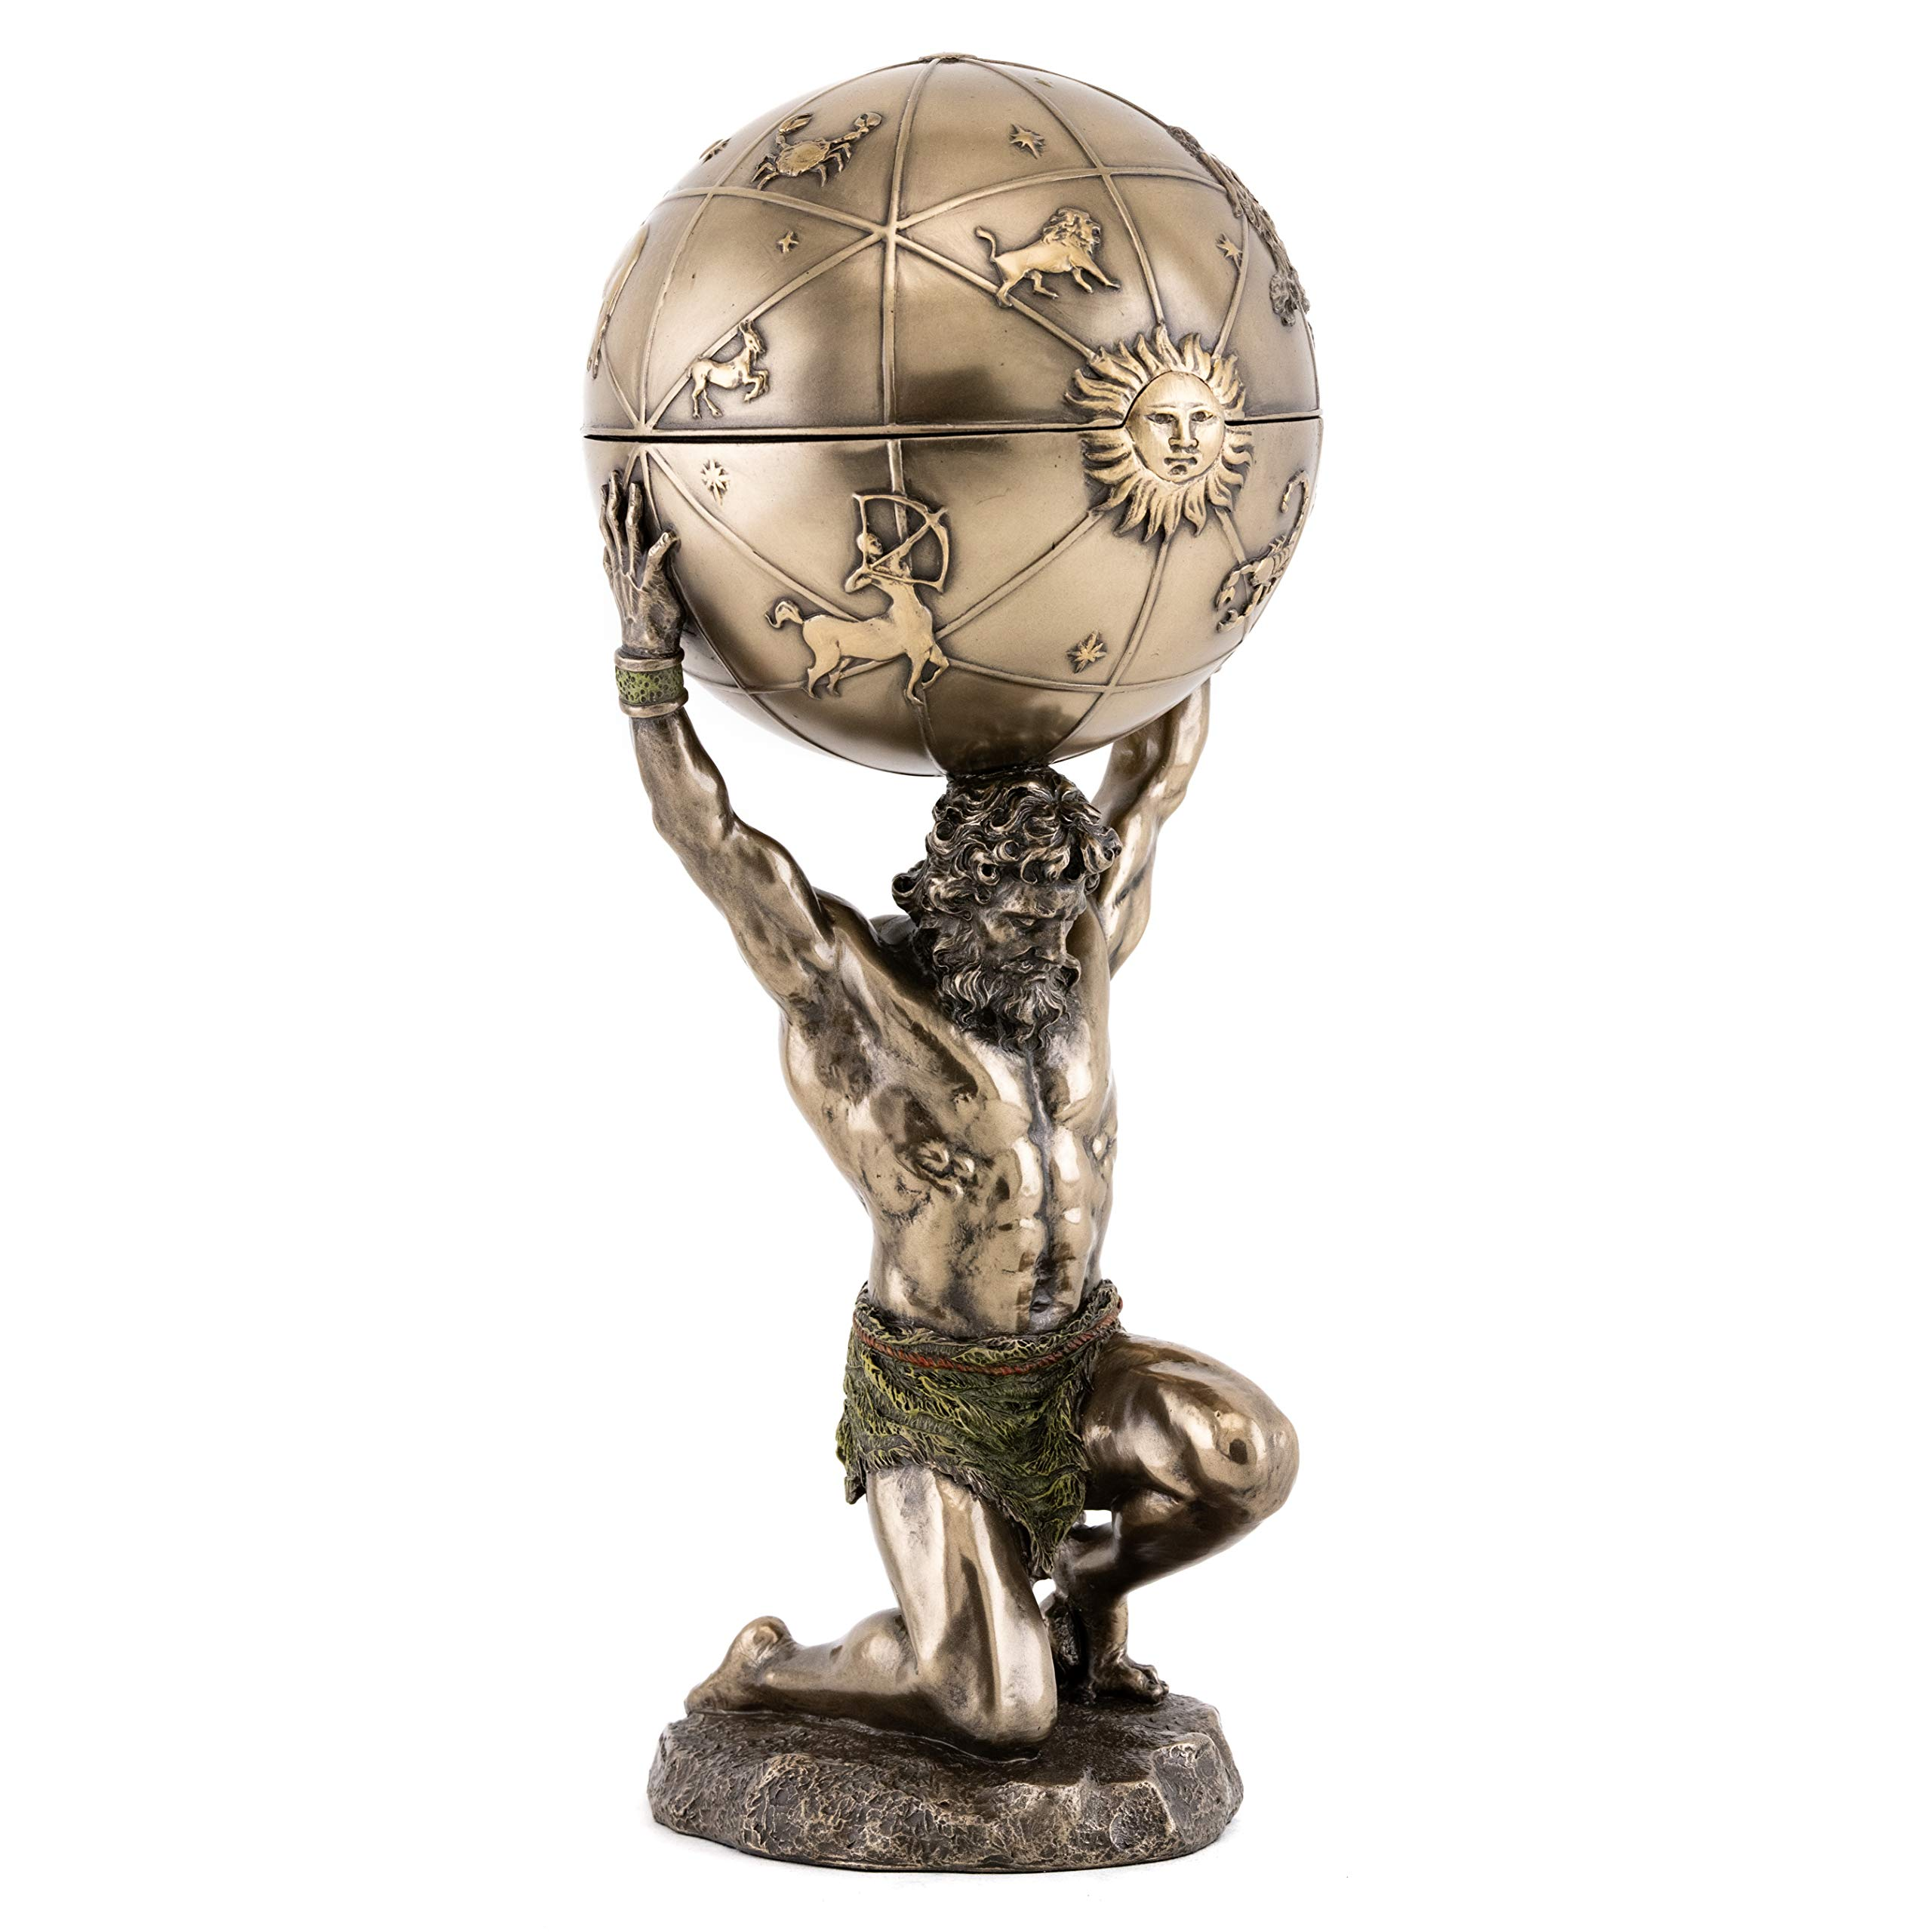 Top Collection Greek God Atlas Statue with Globe Container- Roman God of Heaven and Astronomy Sculpture in Premium Cold Cast Bronze- 12.25-Inch Office Desktop Figurine with Hidden Compartment